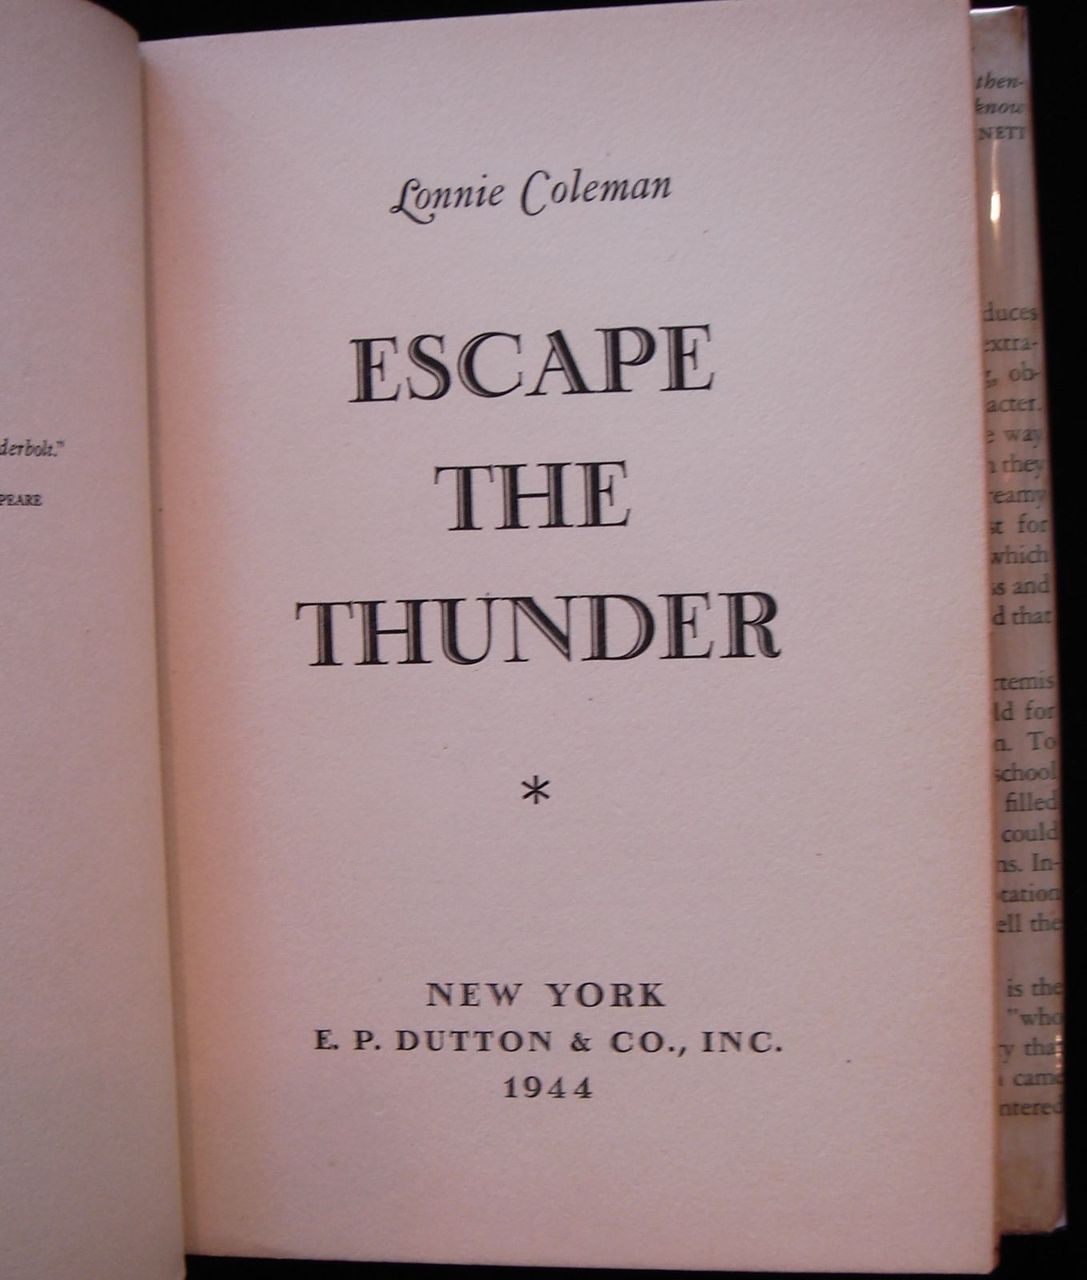 ESCAPE THE THUNDER, by Lonnie Coleman - 1944 [1st Ed]